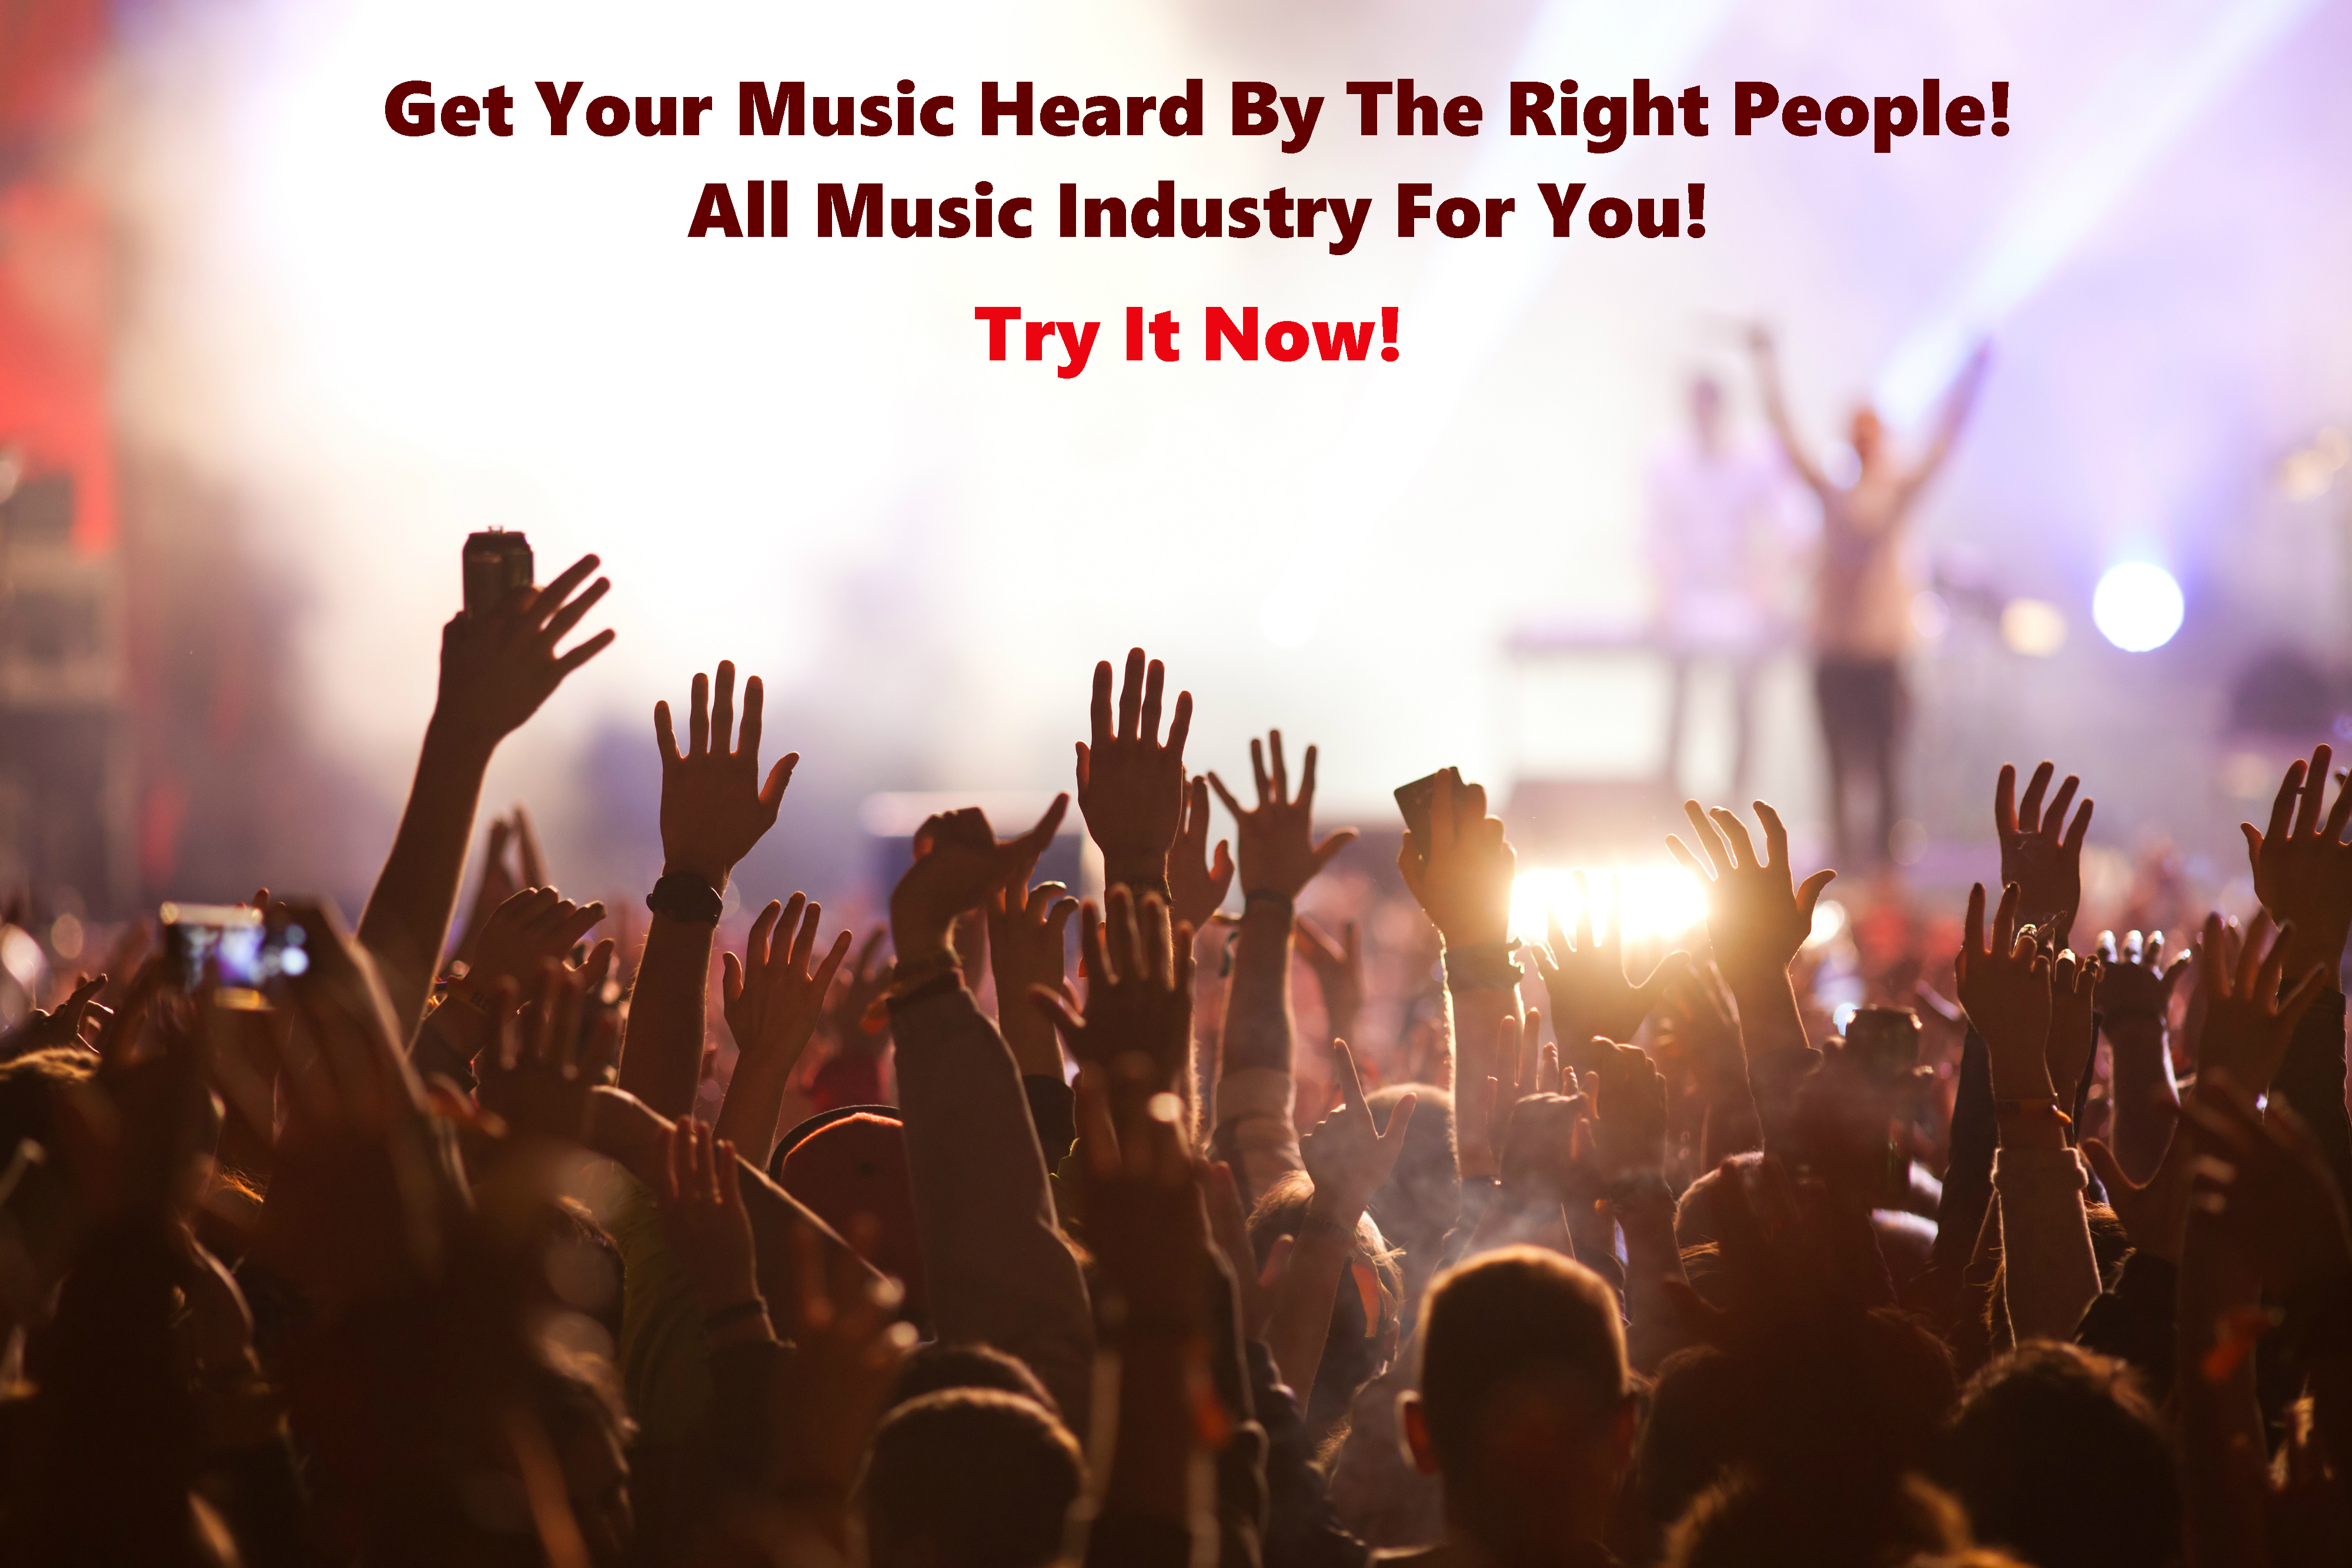 Give Top 5,000 Direct Contacts Djs, Radio, Labels, Blogs, Sites For Your Music